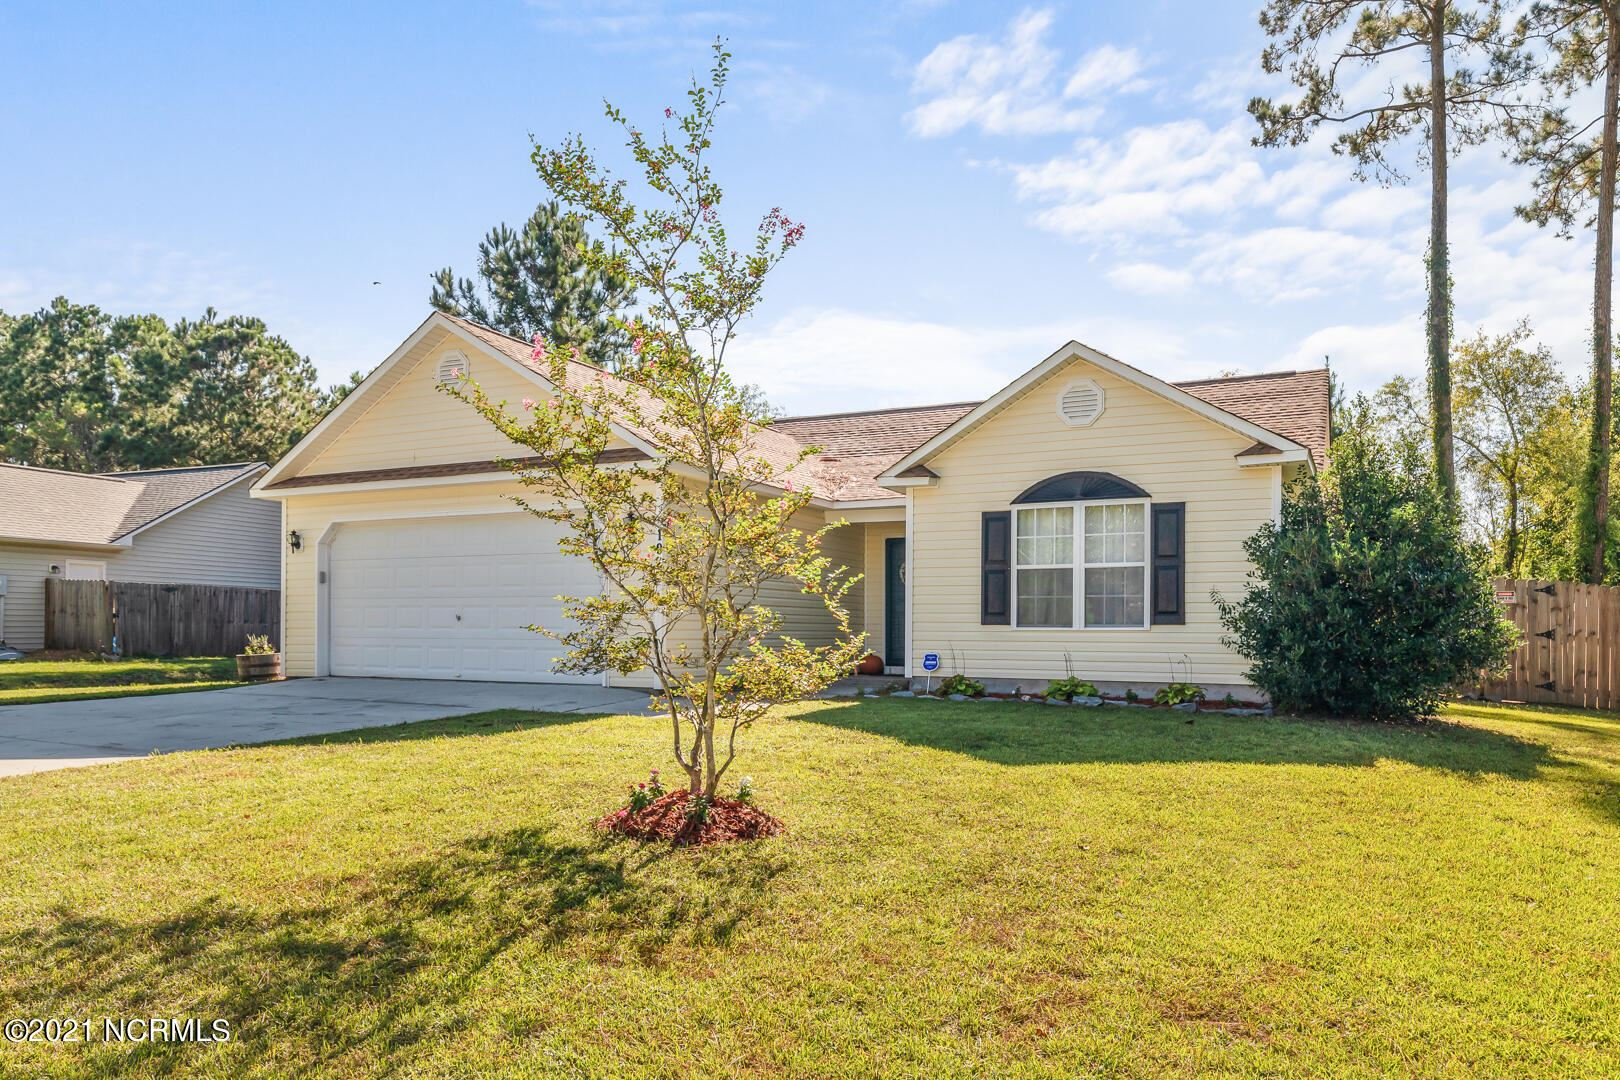 Photo of 102 Sycamore Drive, Jacksonville, NC 28546 (MLS # 100291854)